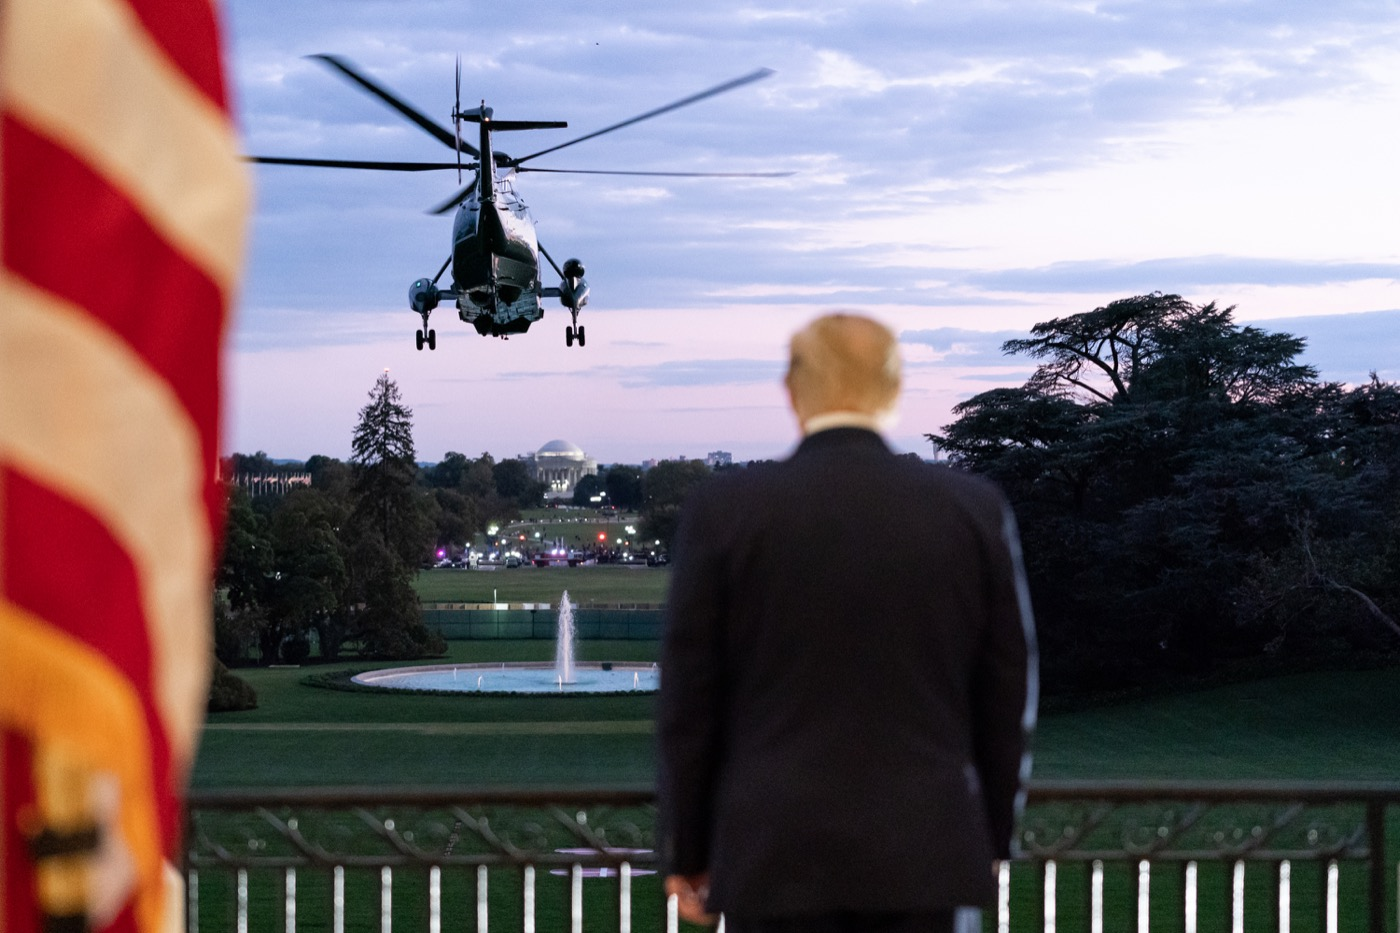 trump from behind on the balcony of the white house as he watches a helicopter flies away